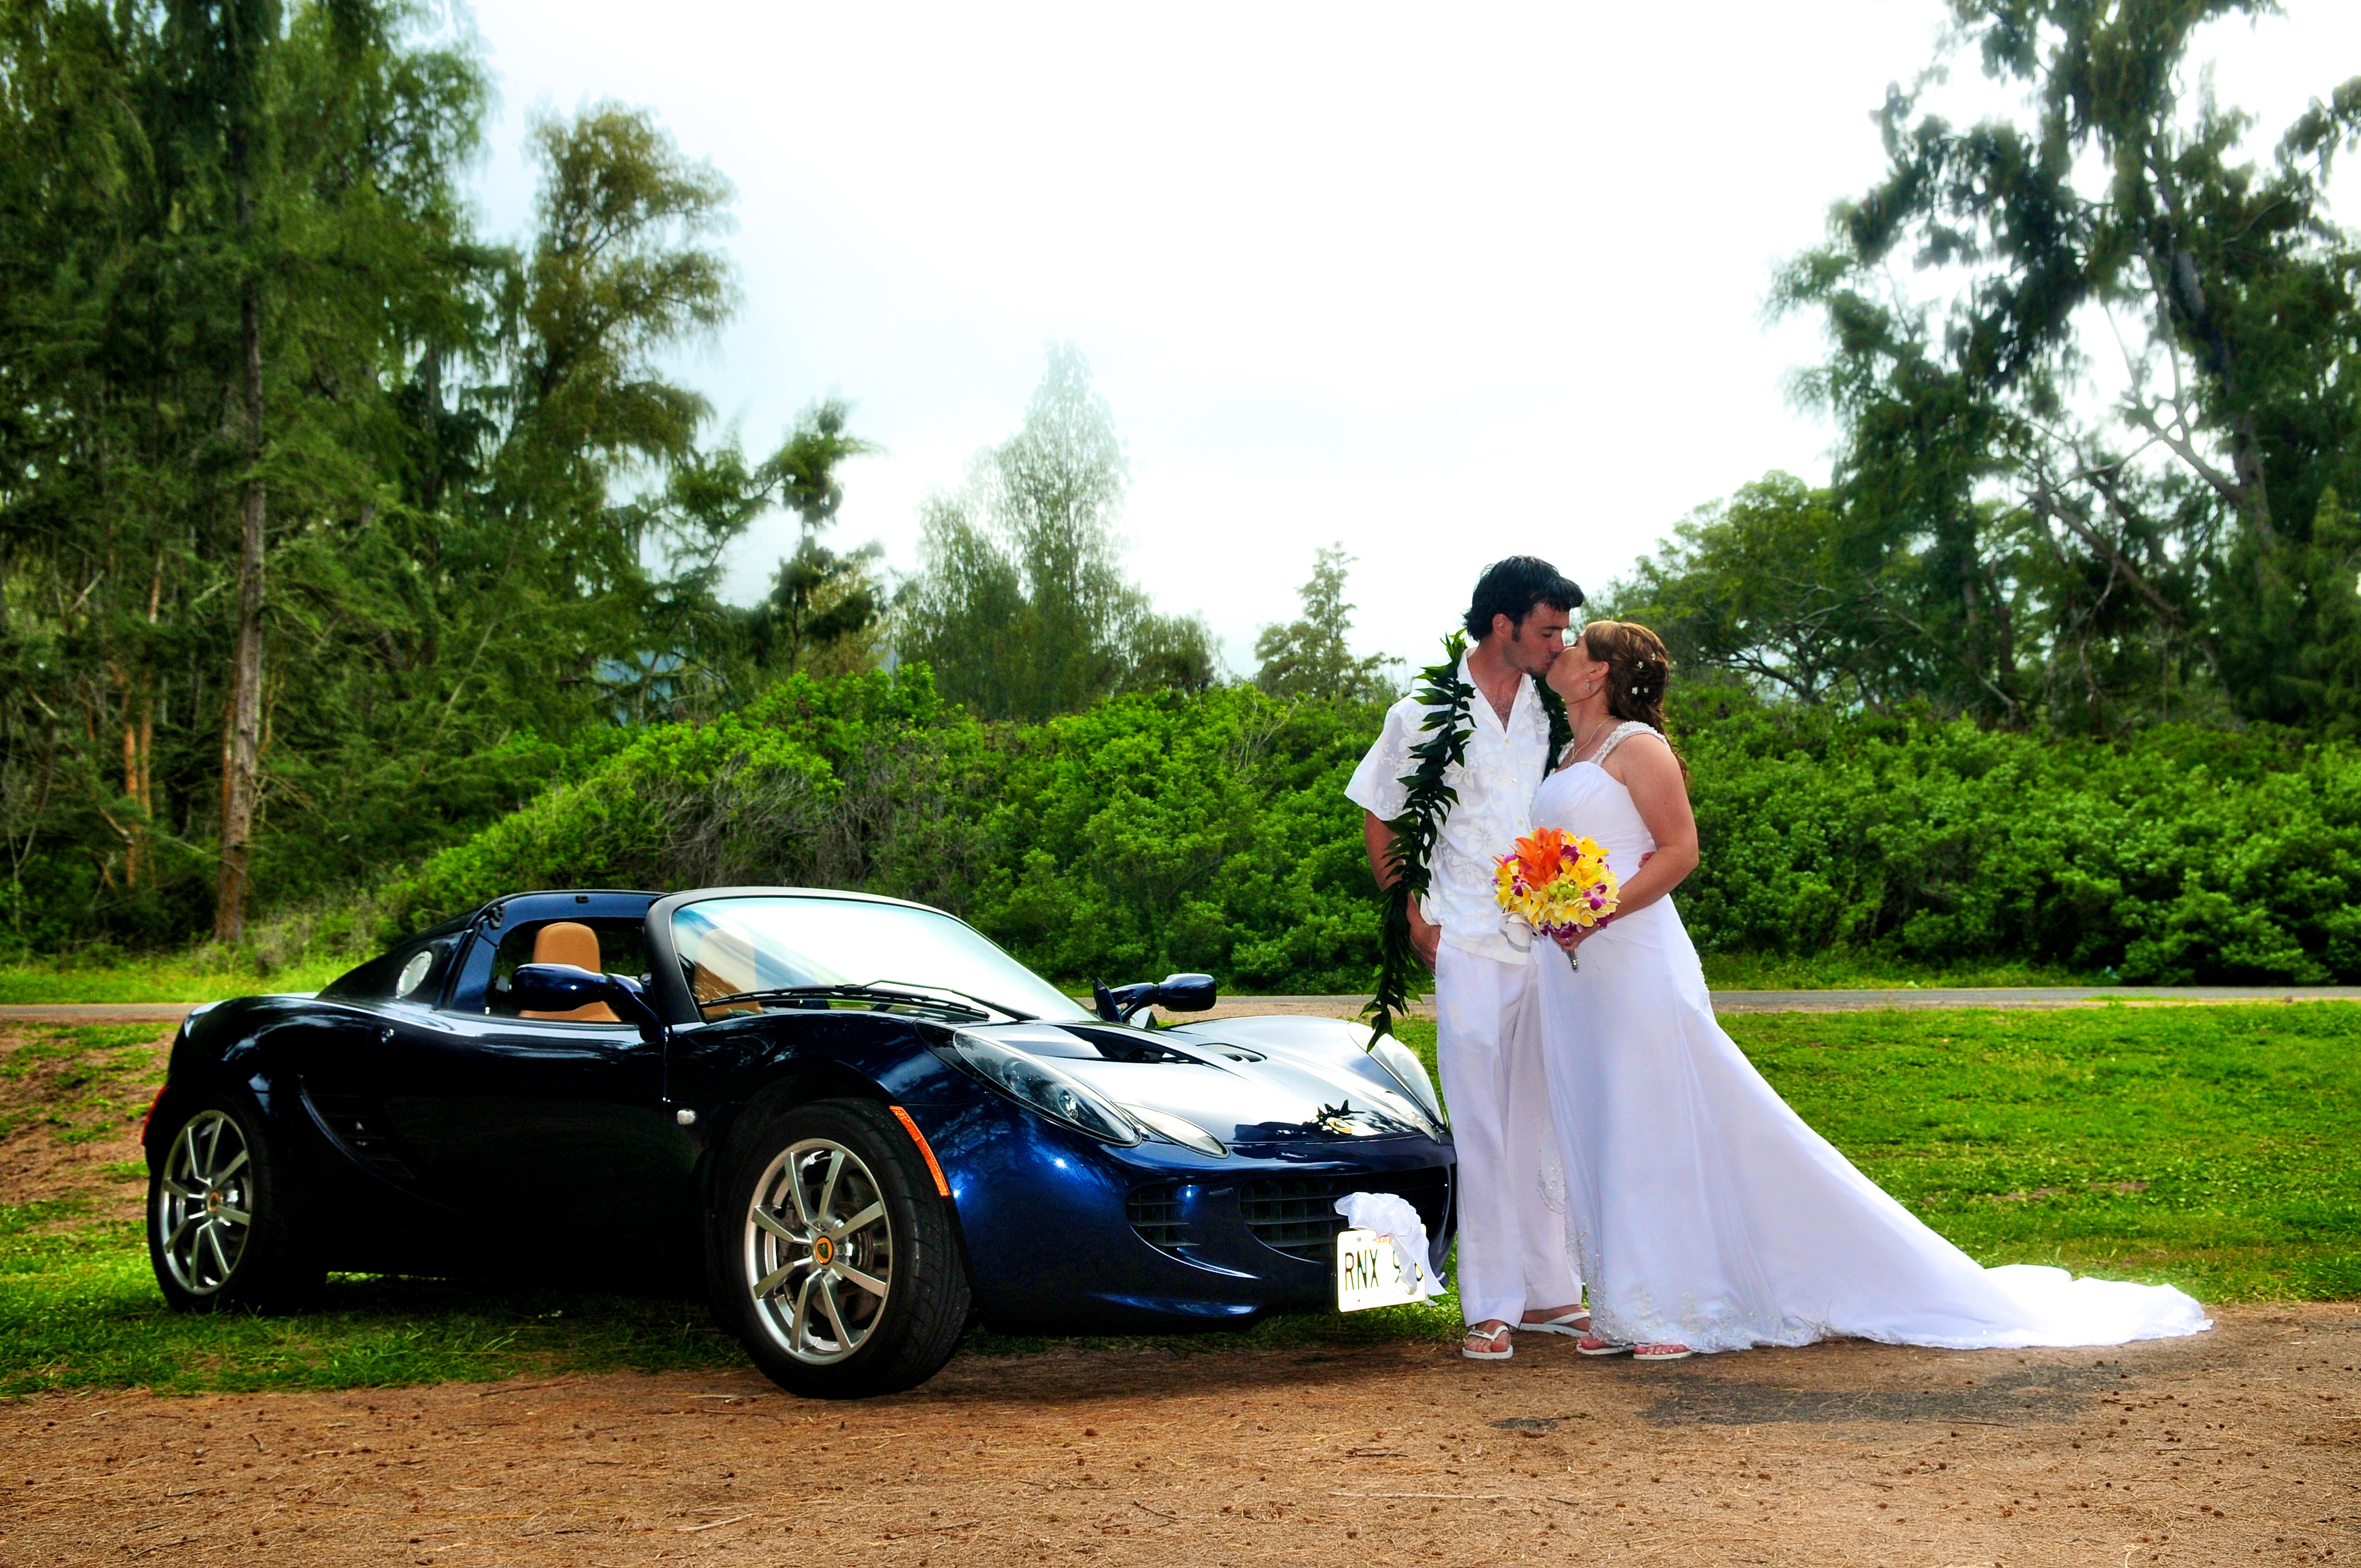 alohaislandweddings- Lotus car -25